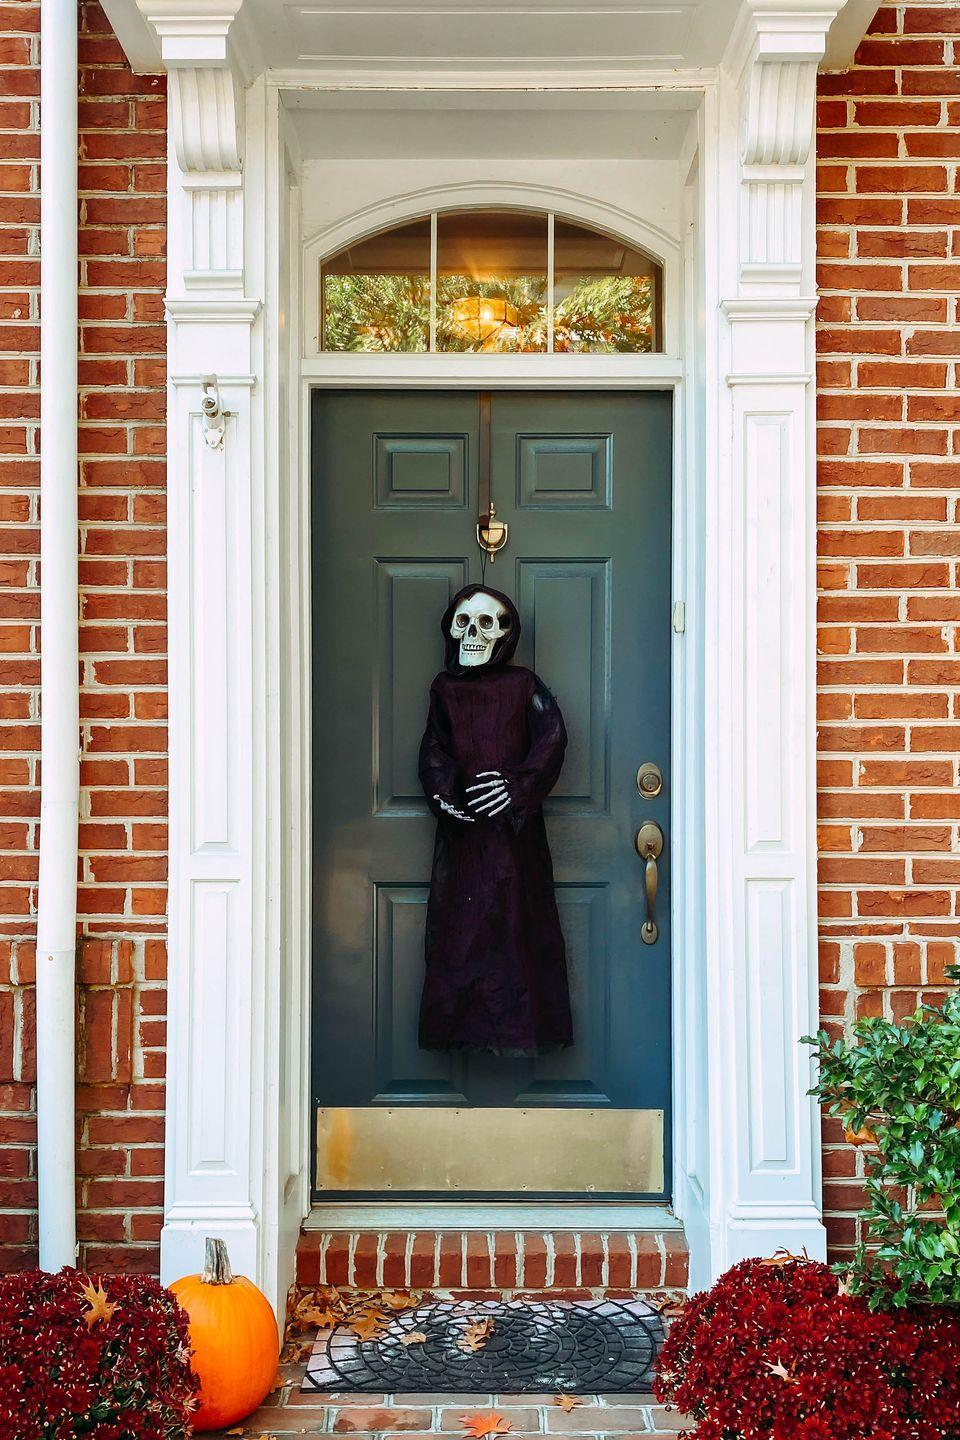 """<p>Place a cloaked skeleton at your door and see how many trick-or-treaters will dare to knock.<br><br><a class=""""link rapid-noclick-resp"""" href=""""https://go.redirectingat.com?id=74968X1596630&url=https%3A%2F%2Fwww.etsy.com%2Flisting%2F206702101%2Fhalloween-decor-cloaked-clay-skeleton-in&sref=https%3A%2F%2Fwww.goodhousekeeping.com%2Fholidays%2Fhalloween-ideas%2Fg32948621%2Fhalloween-door-decorations%2F"""" rel=""""nofollow noopener"""" target=""""_blank"""" data-ylk=""""slk:SHOP CLOAKED CLAY SKELETON"""">SHOP CLOAKED CLAY SKELETON</a></p>"""